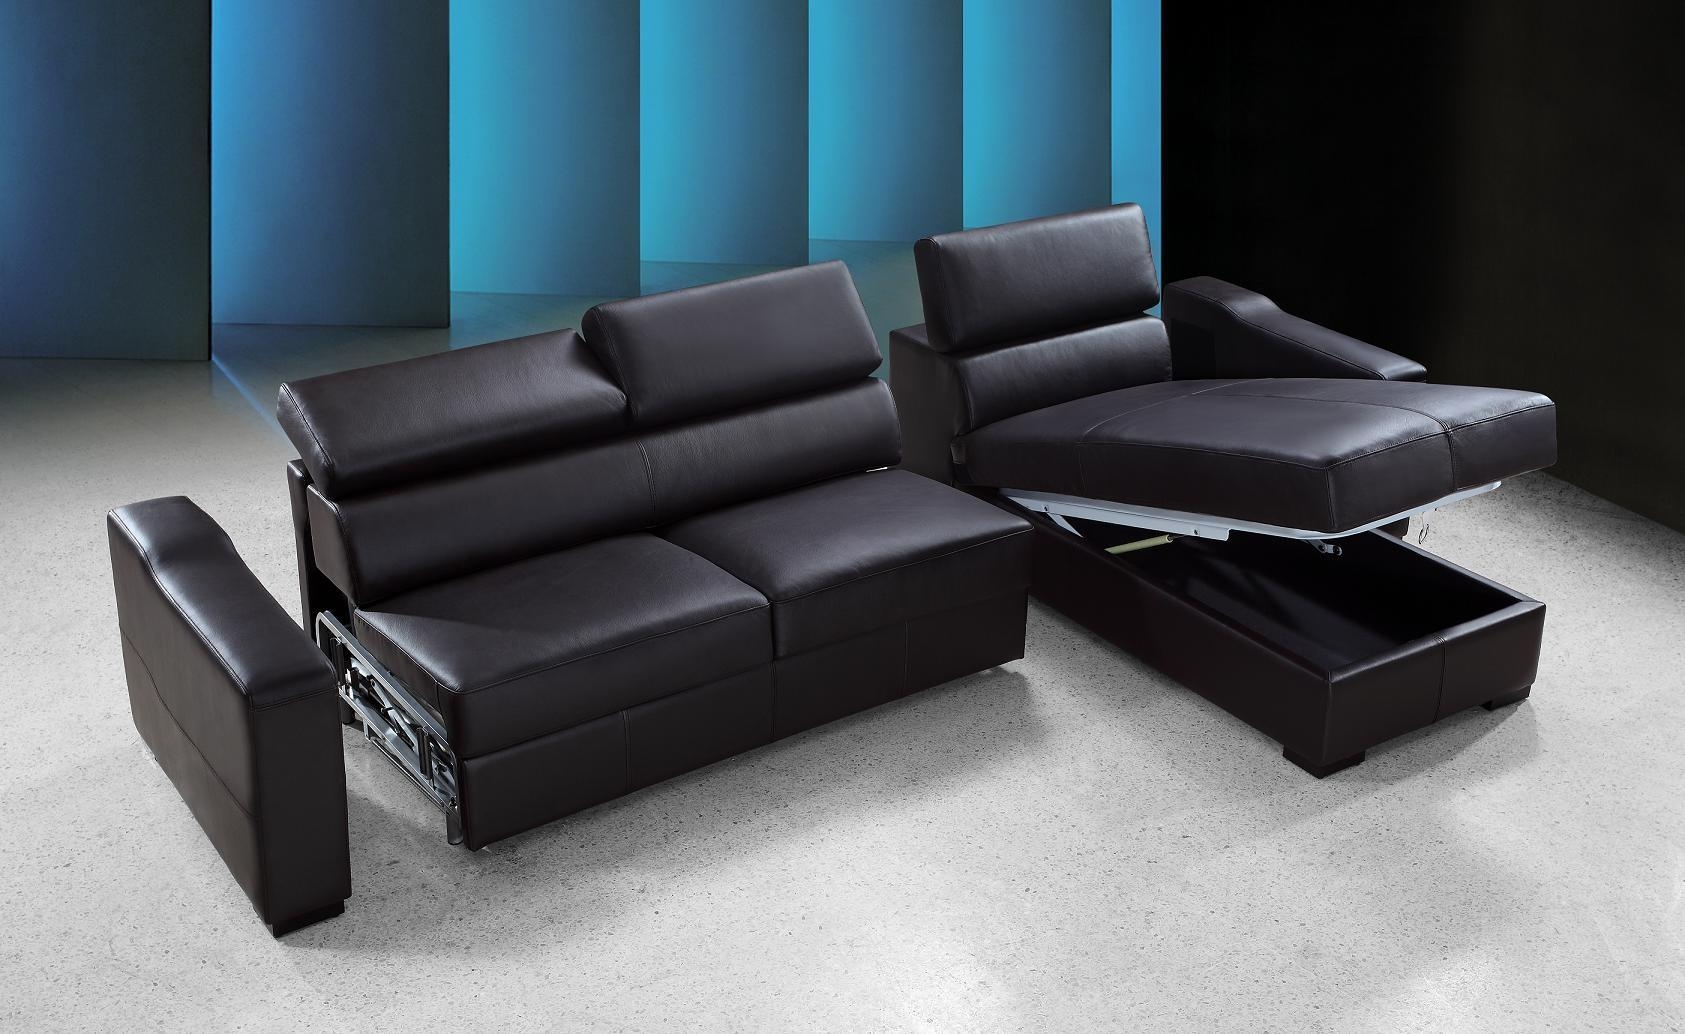 Flip Reversible Espresso Leather Sectional Sofa Bed W/ Storage Throughout Sectional Sofa Beds (View 9 of 20)